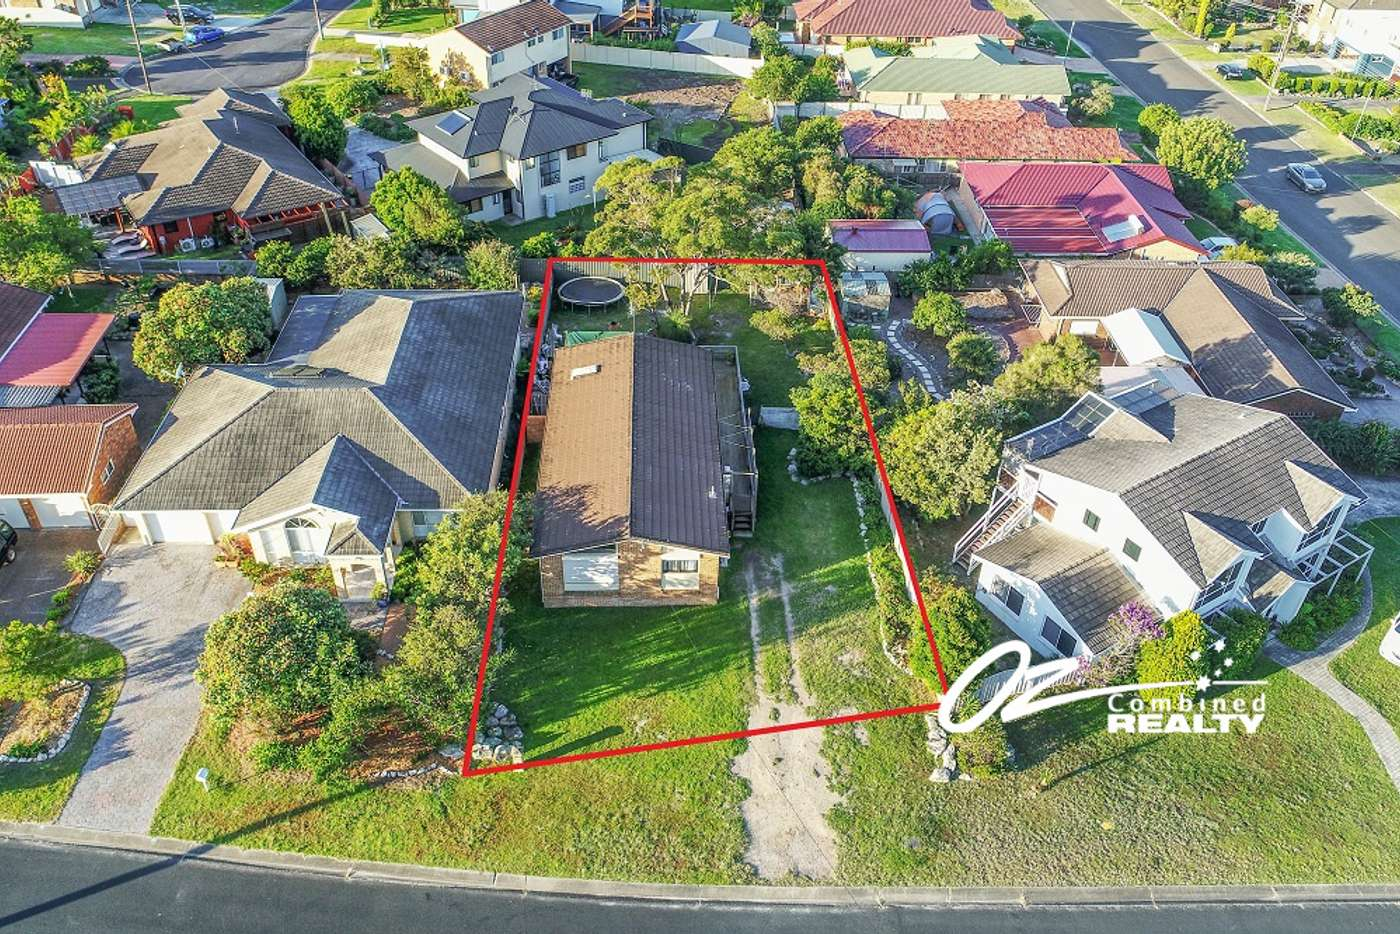 Main view of Homely house listing, 4 Prowse Close, Vincentia NSW 2540